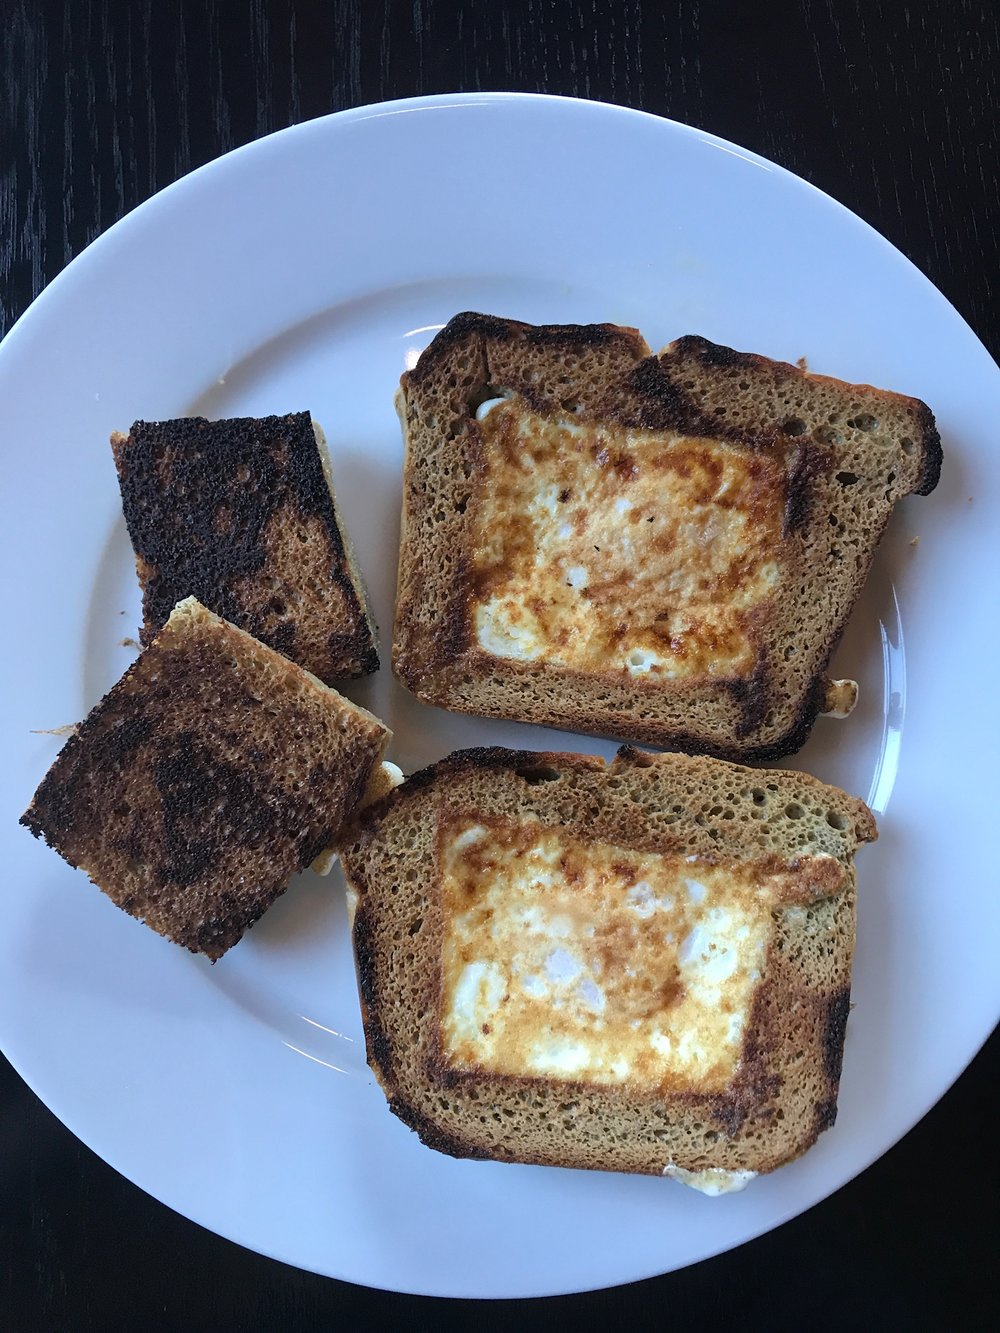 My mom's famous 'eggs in a basket'. This was a breakfast staple growing up in my family!